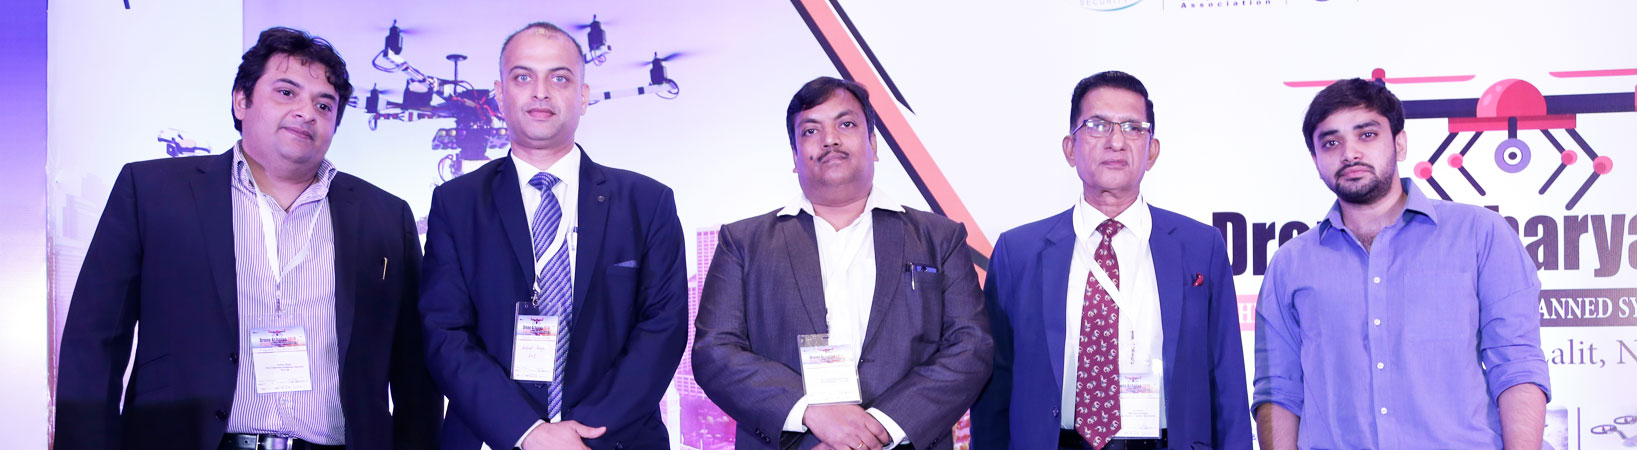 Drone Event of Dronacharya Members